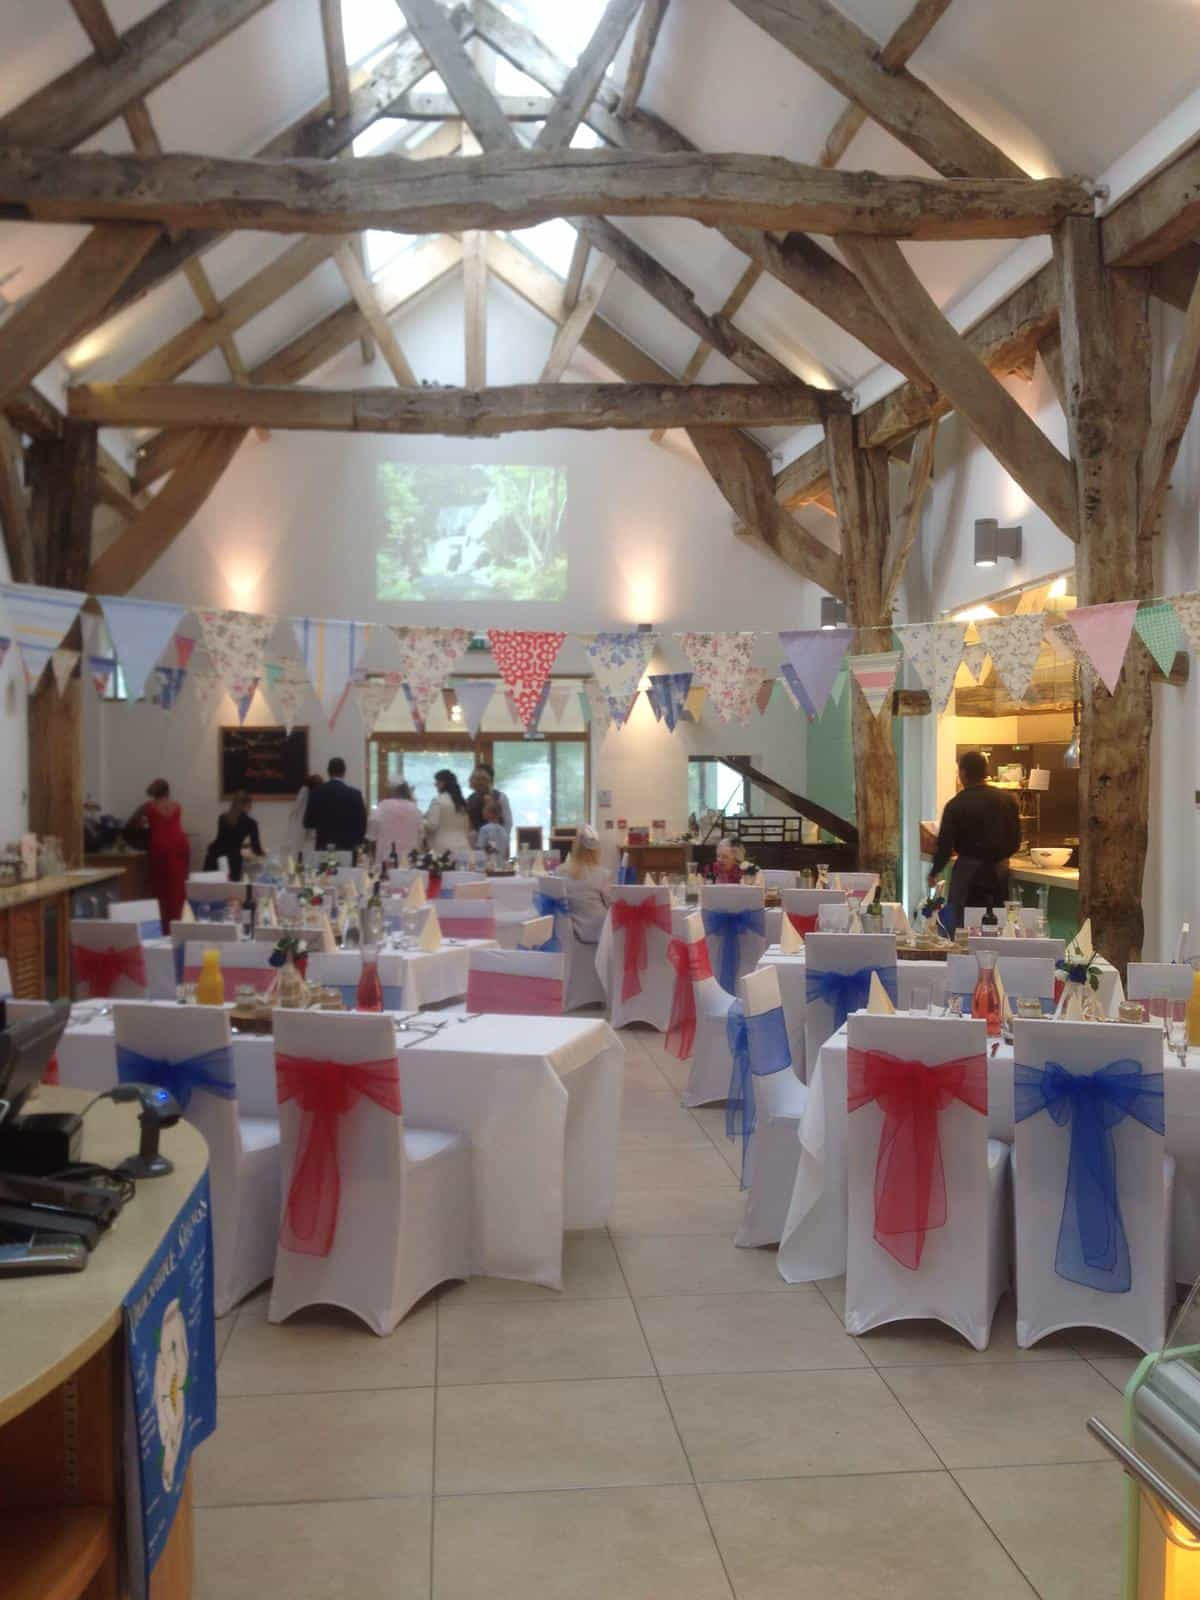 Baby shower venue dressing event with red and blue decoration to tables and chairs